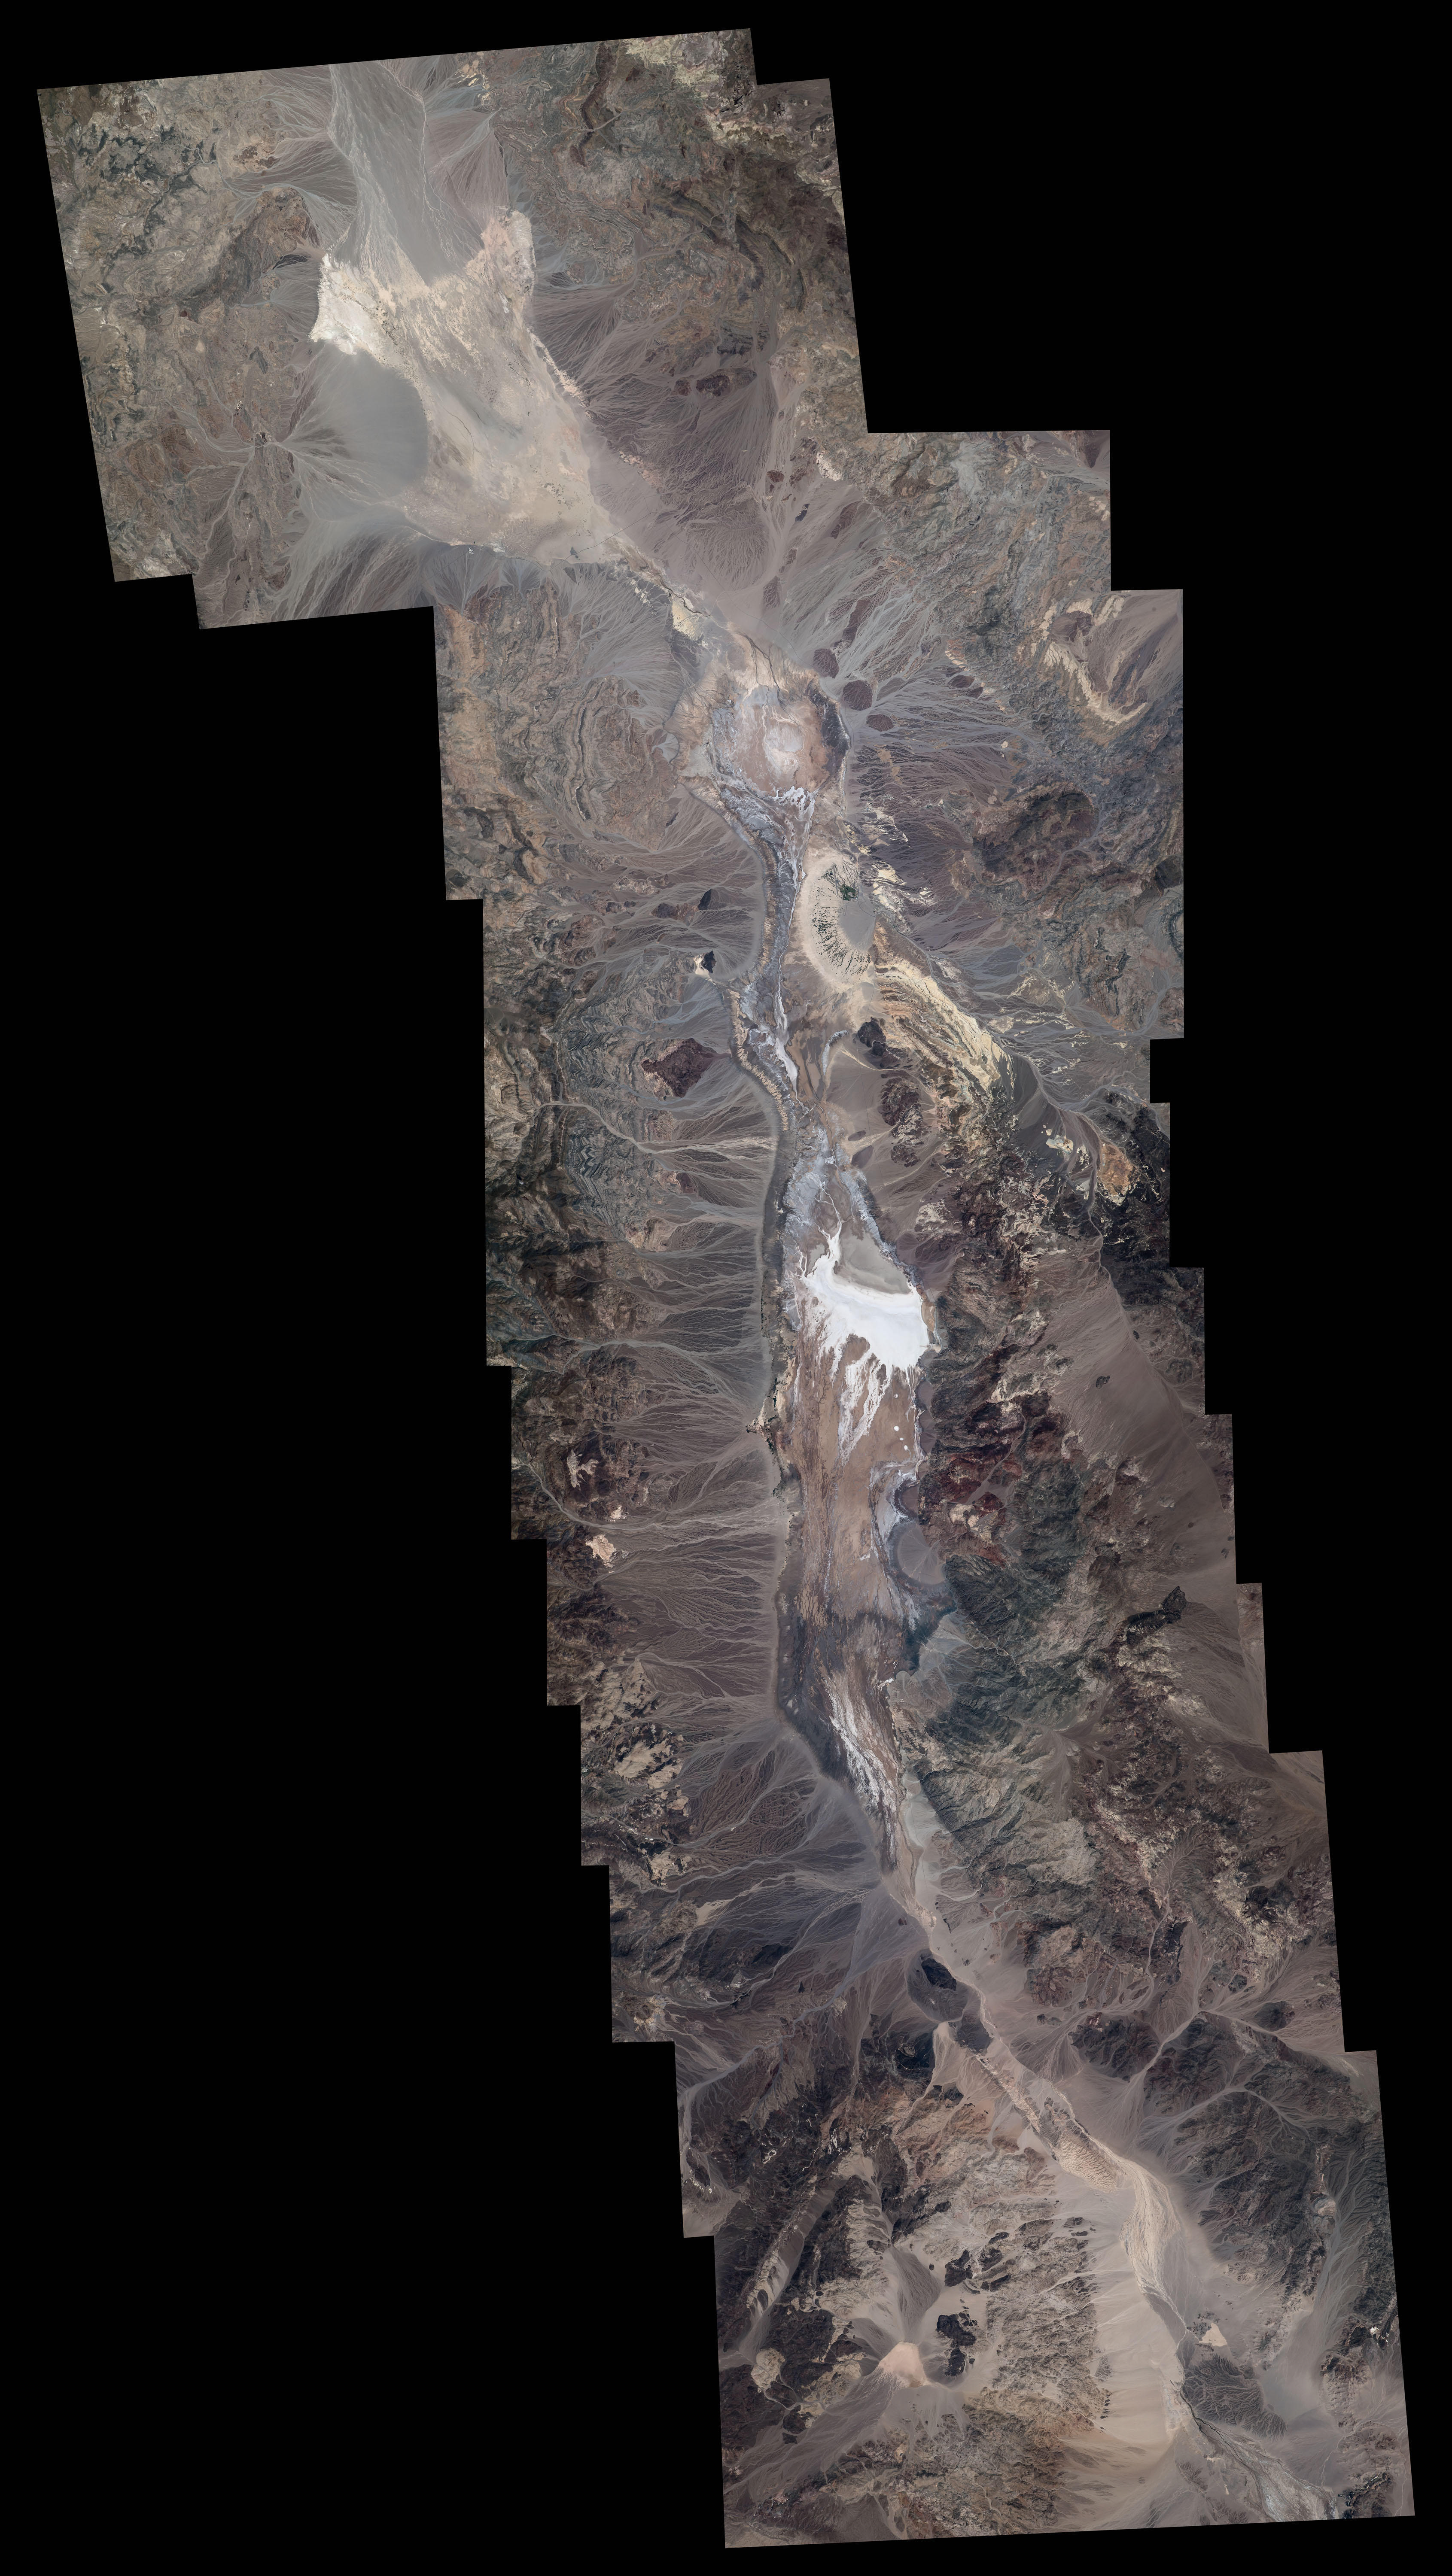 Badwater, Death Valley National Park | NASA